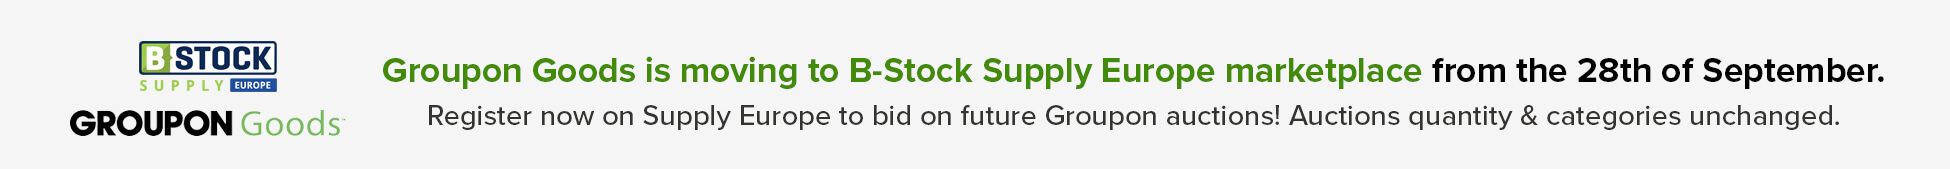 Groupon is moving to Supply EU